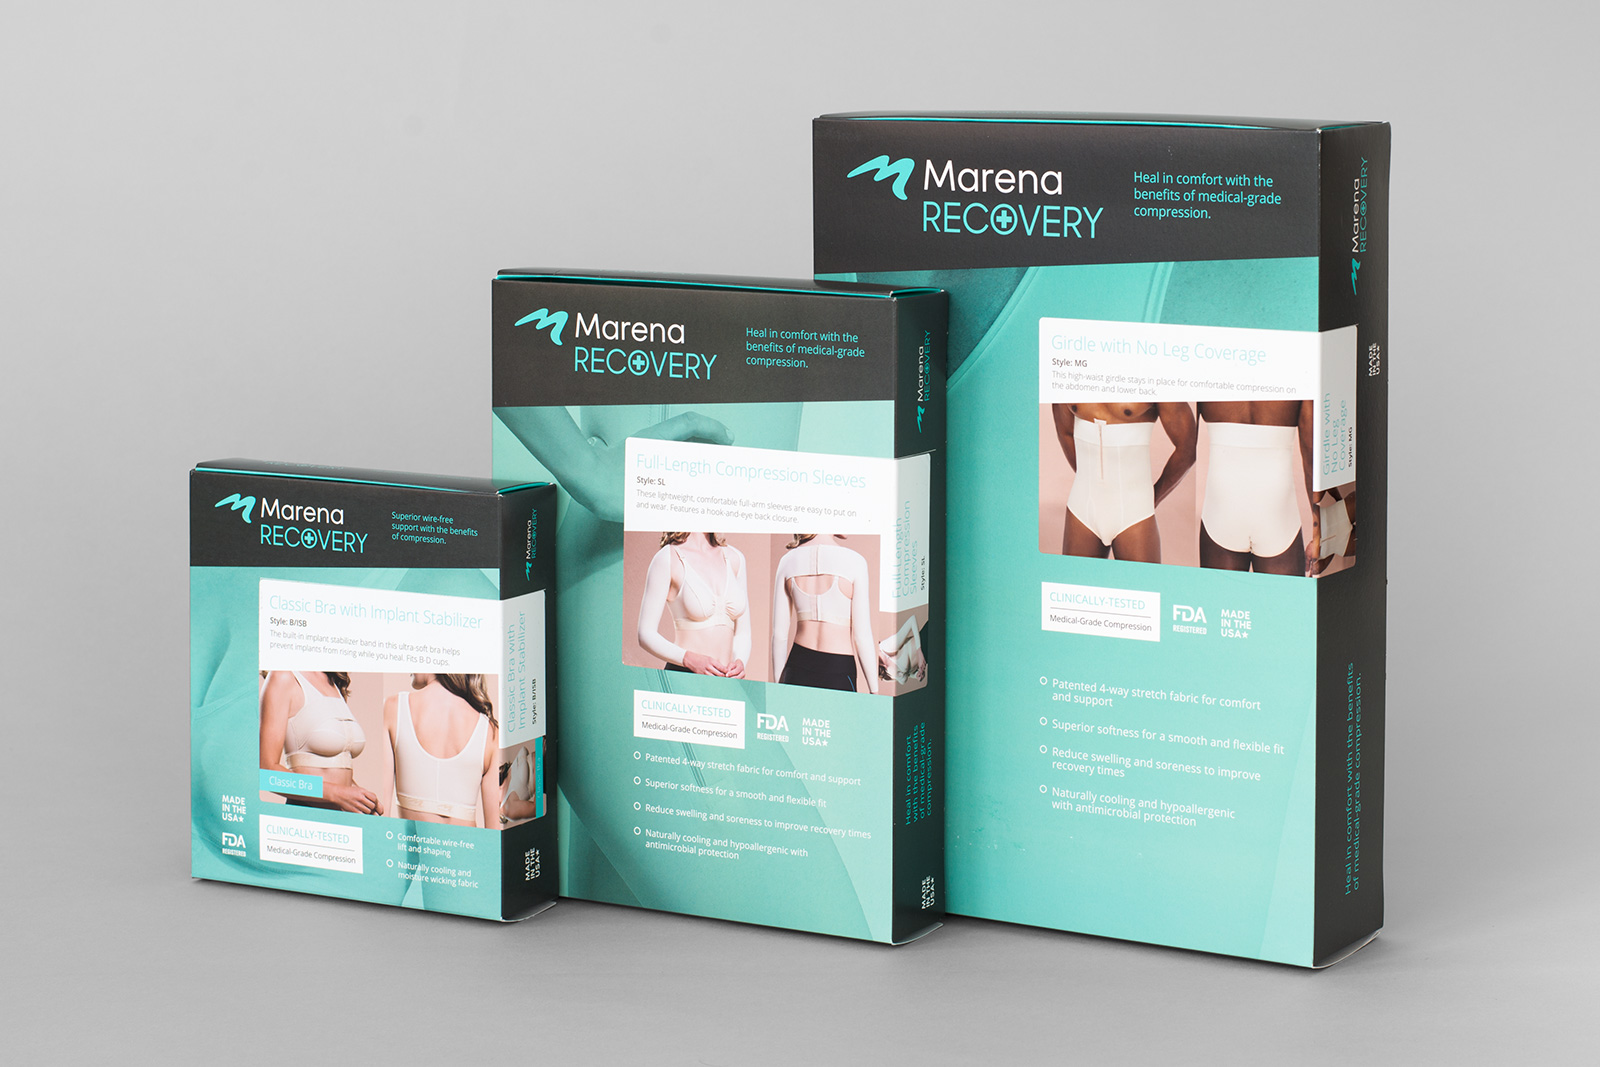 marena-sport-recovery-01